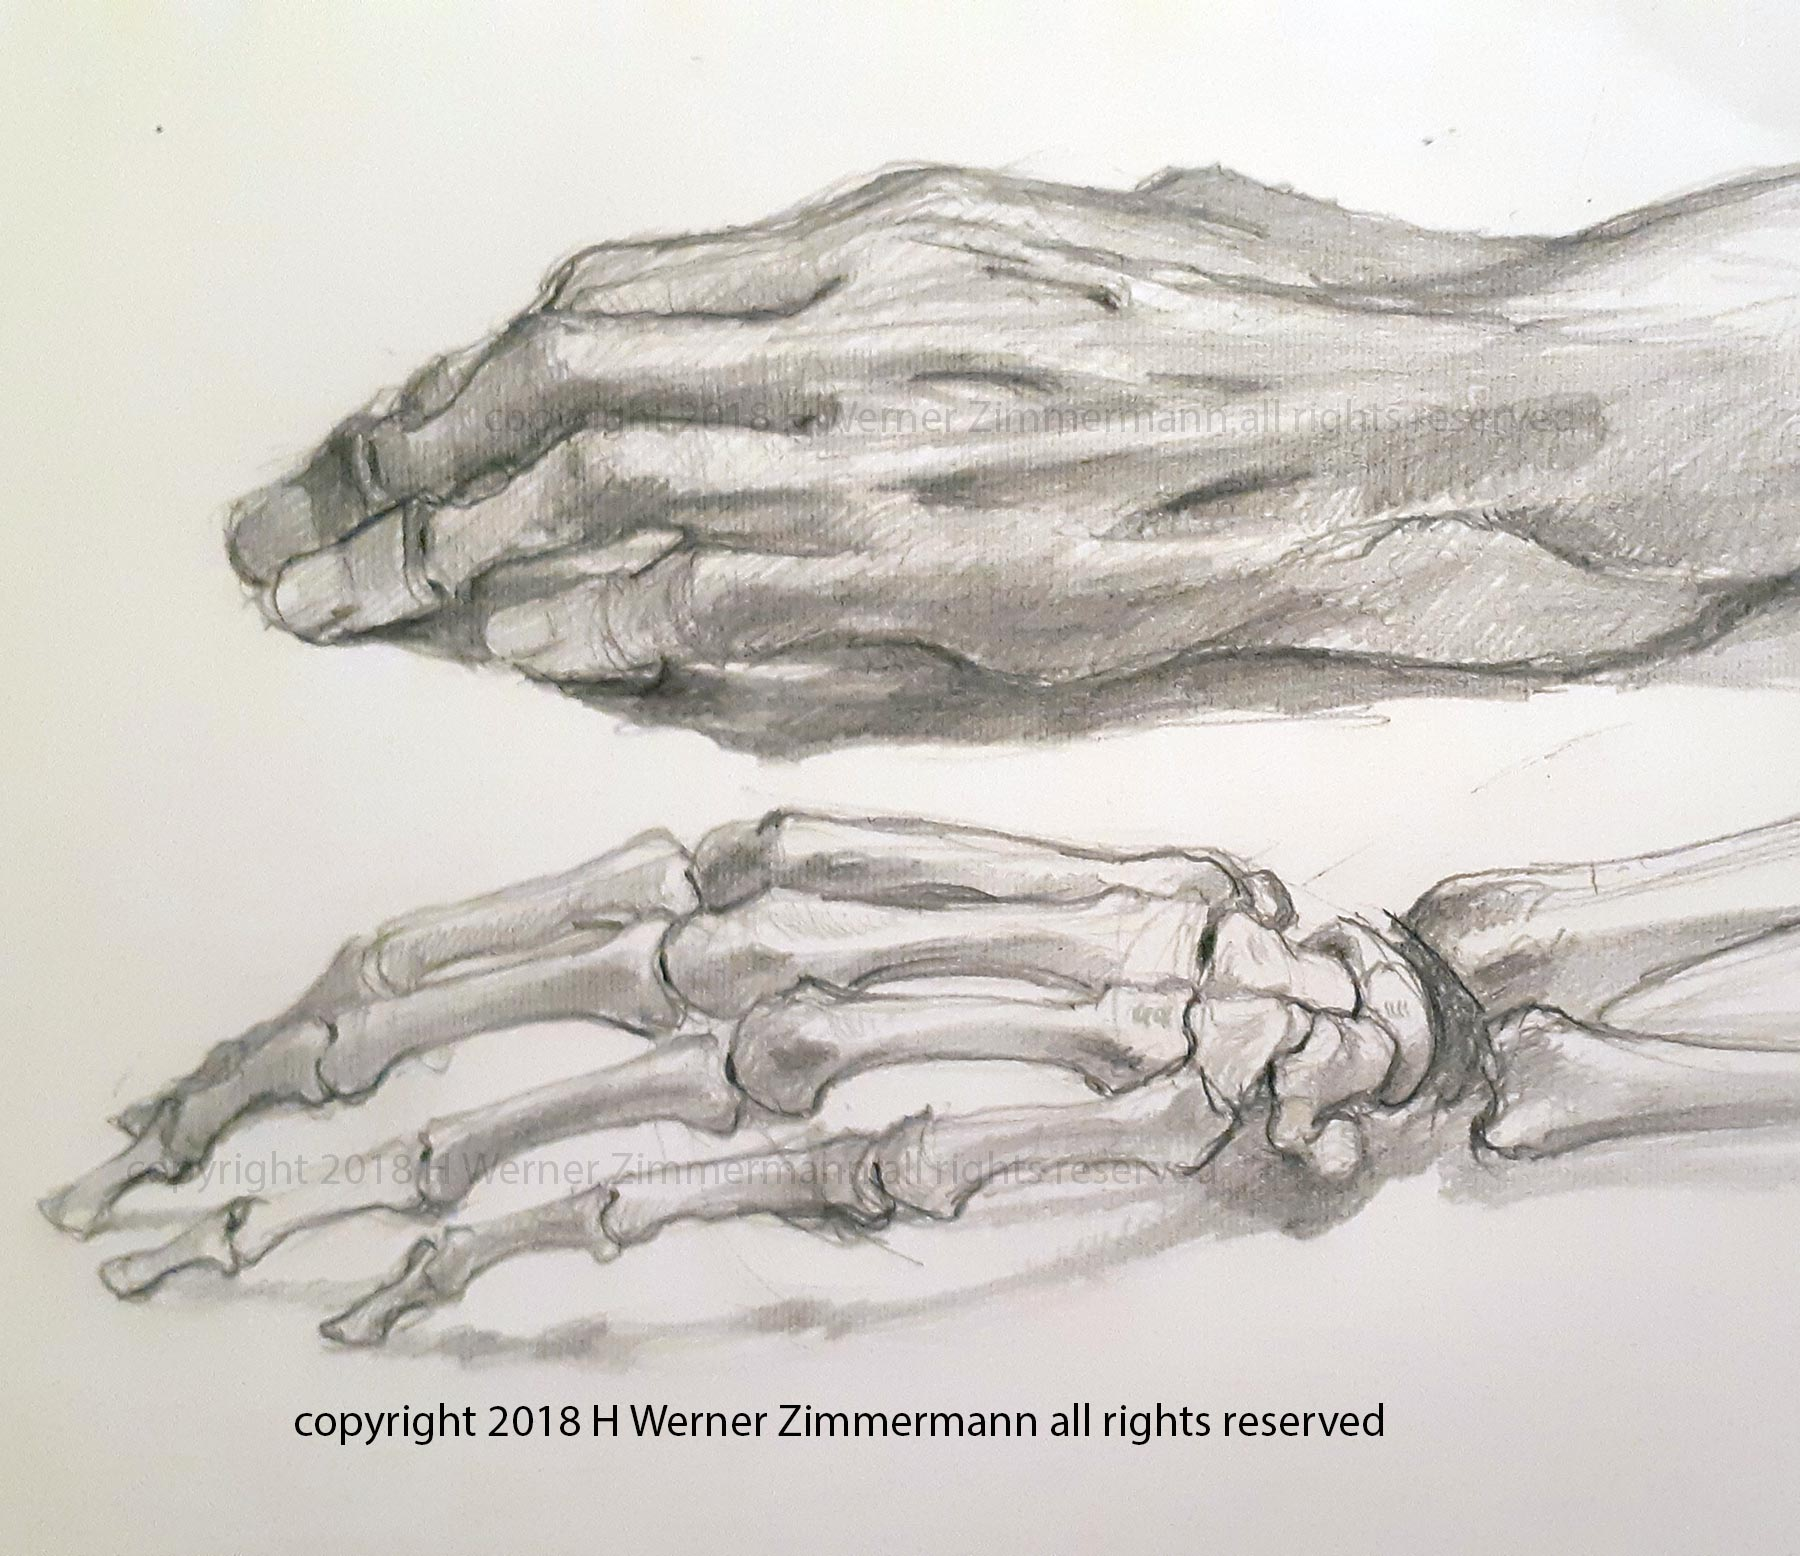 anatomy-hand-studies-Sept-28-2018.jpg